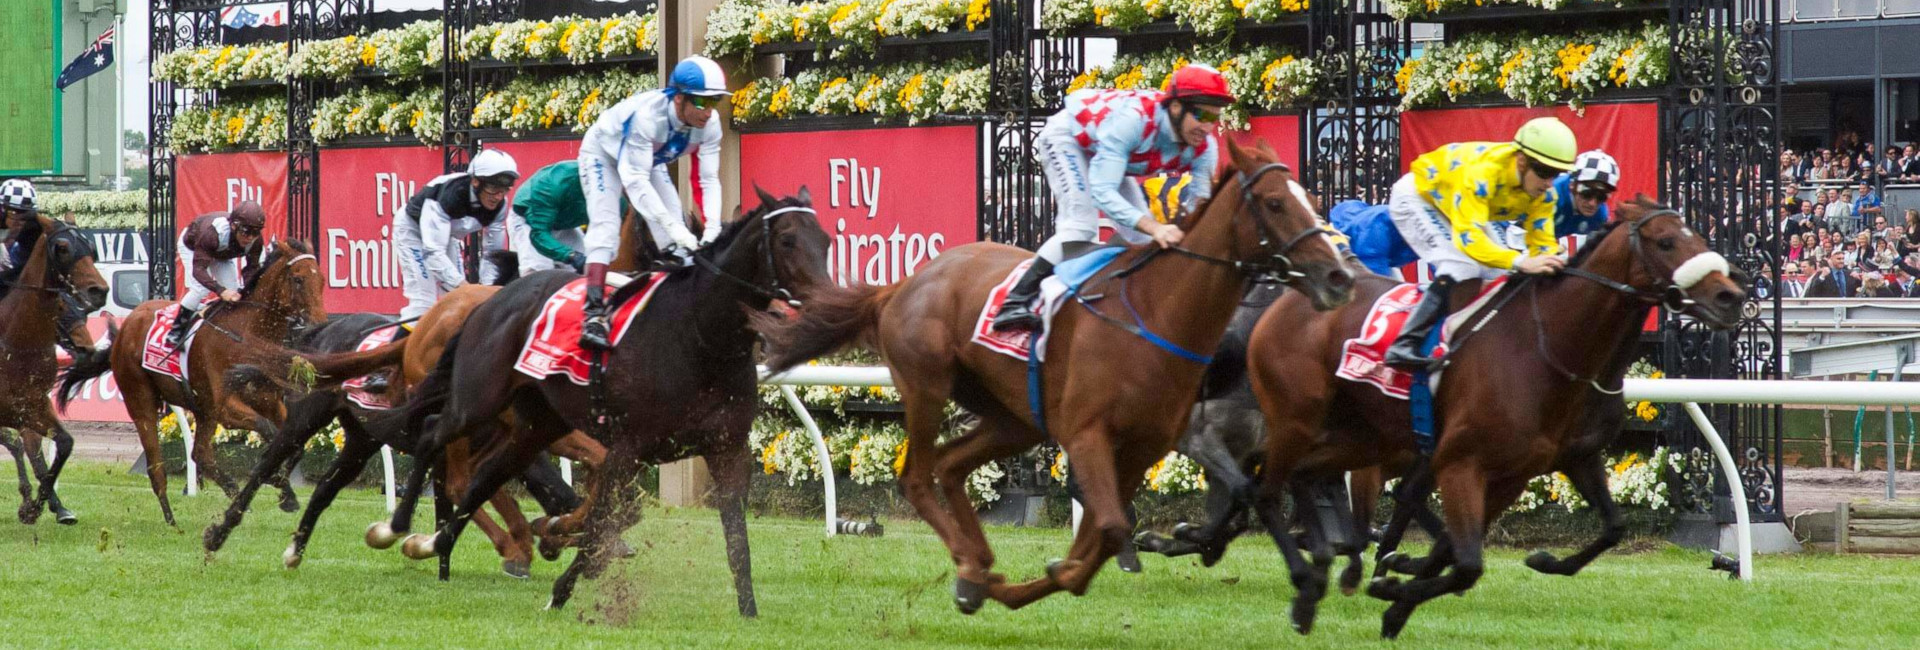 Melbourne Cup Day Return Ferry Transfer Package